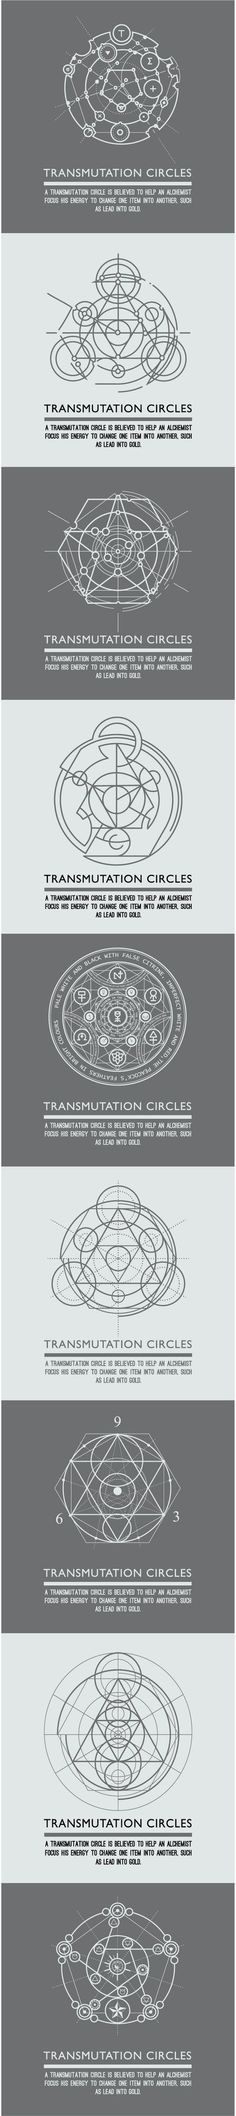 Transmutation circles - alchemical symbol - sacred geometry - can be used in your design - the art of tattooing - the design of logos - corporate identity - as a poster or a badge. www.shutterstock.com/gallery-2120018p1.html